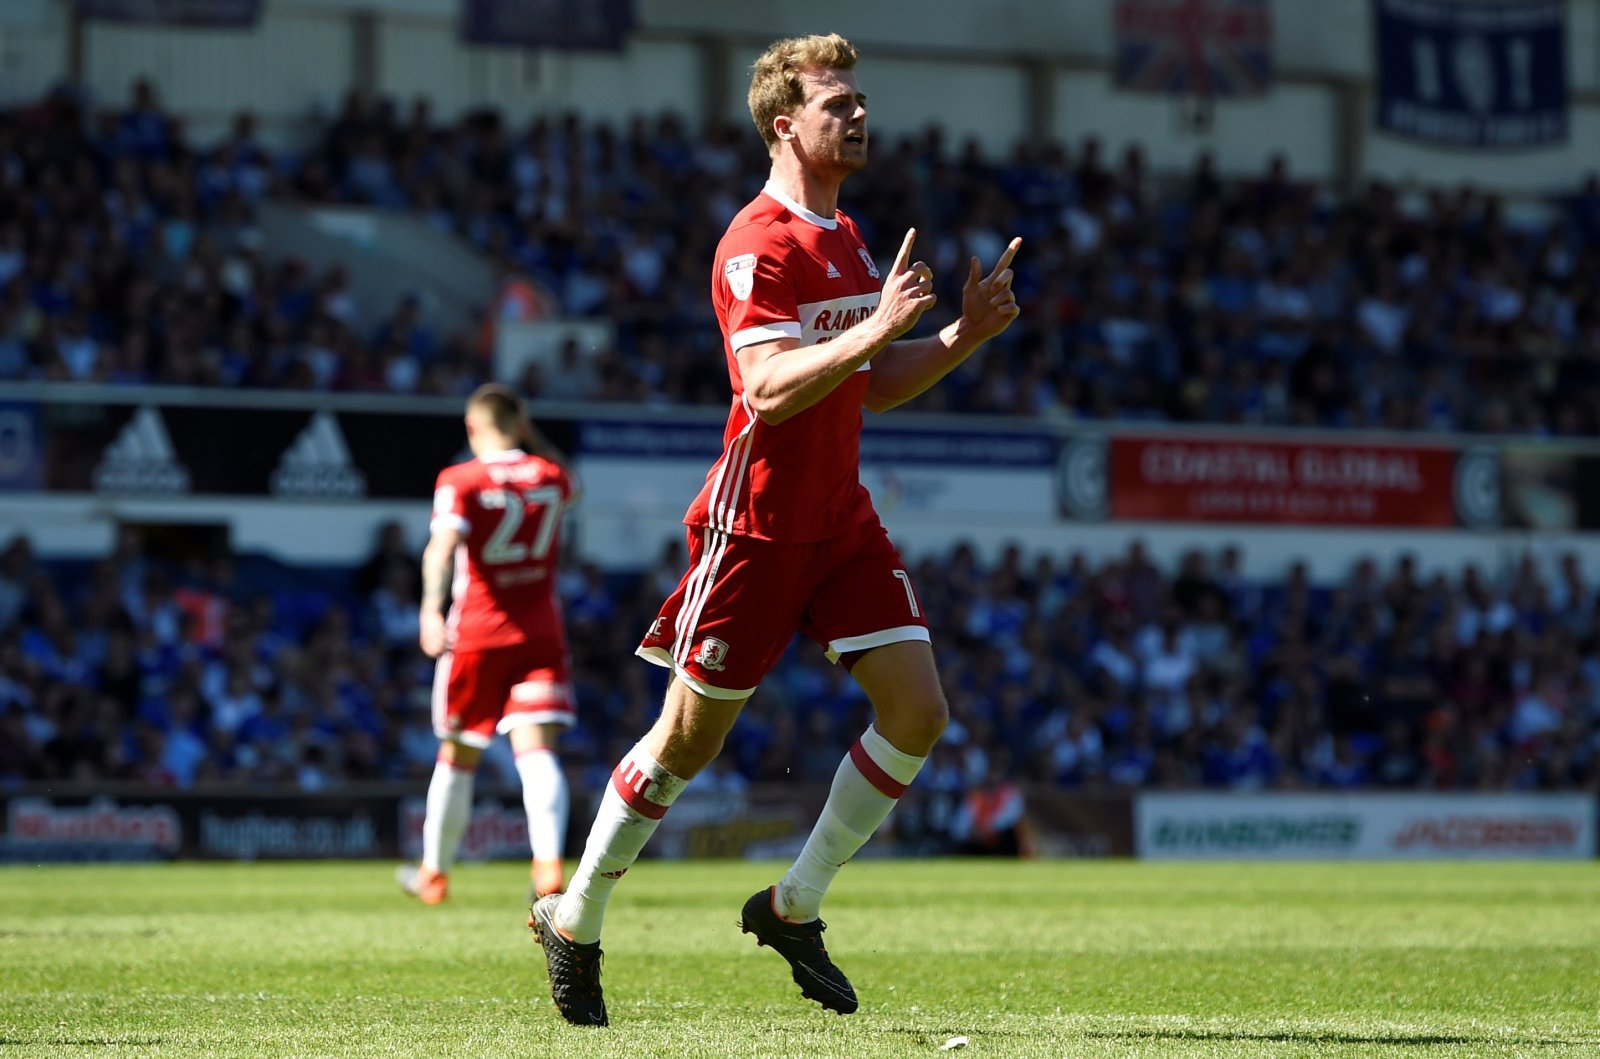 Leeds complete the signing of Patrick Bamford